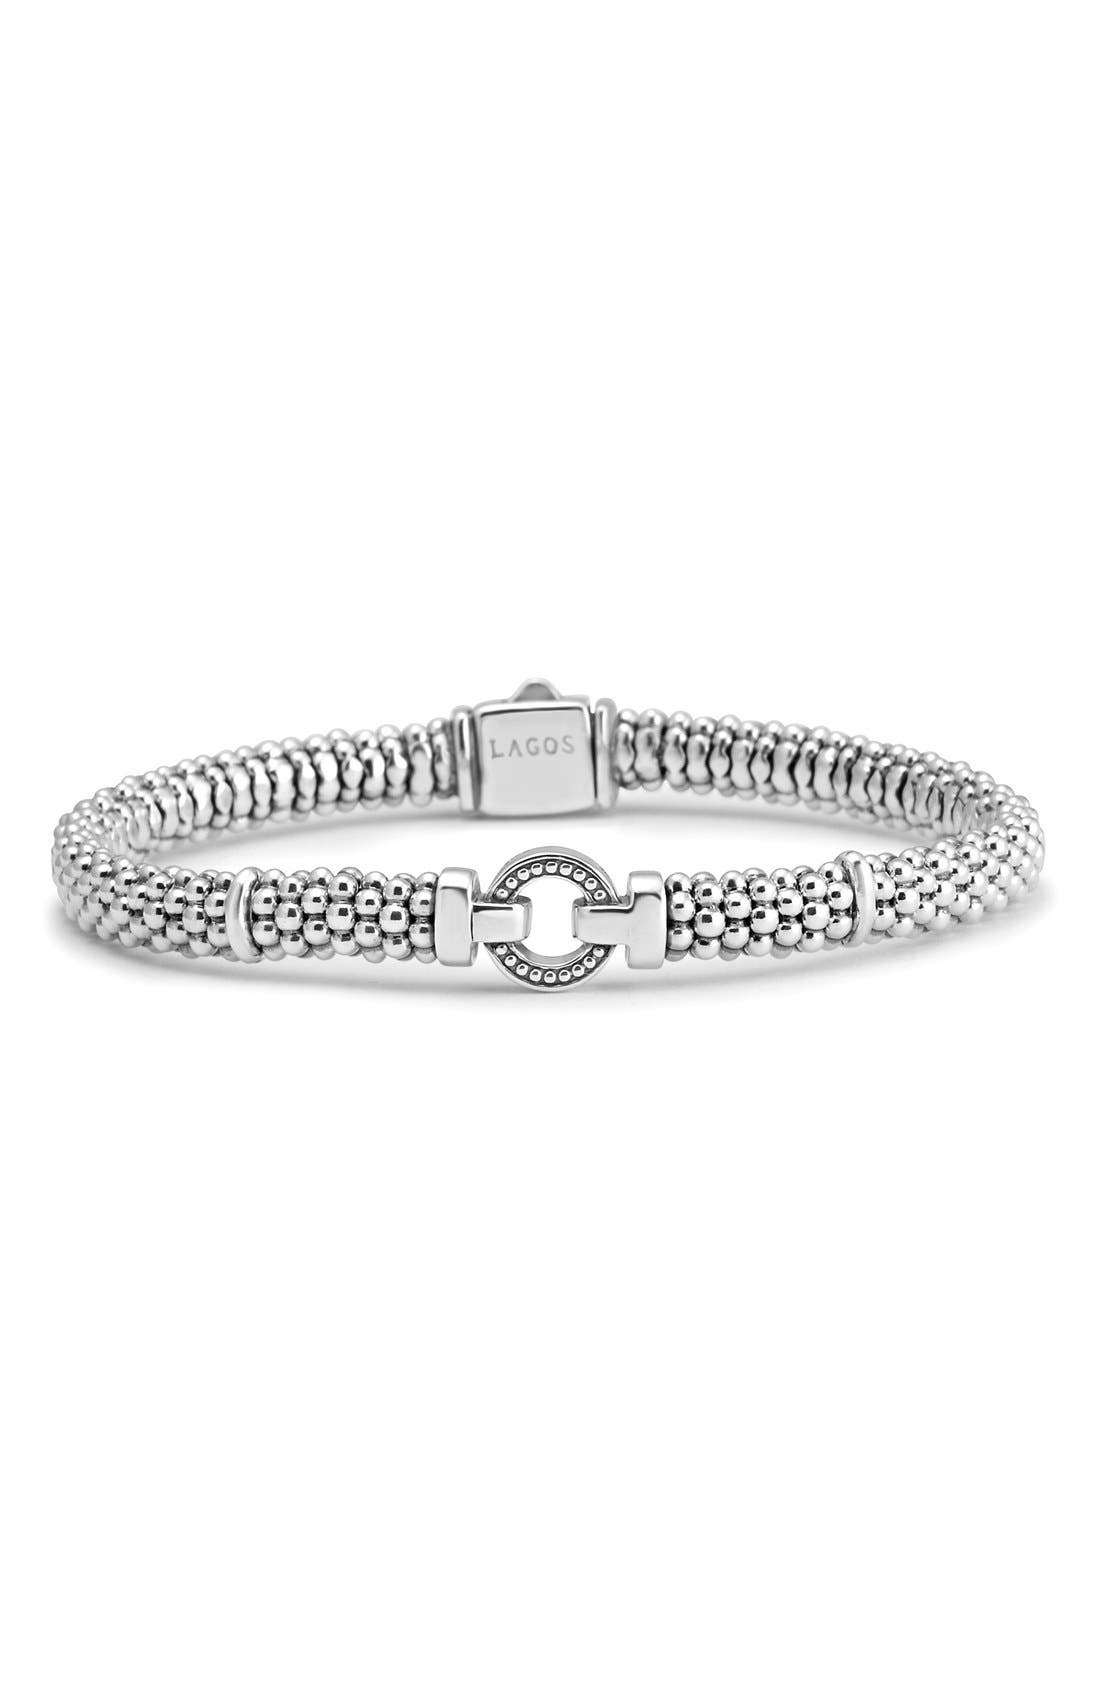 Alternate Image 1 Selected - LAGOS Enso Boxed Circle Station Caviar Rope Bracelet